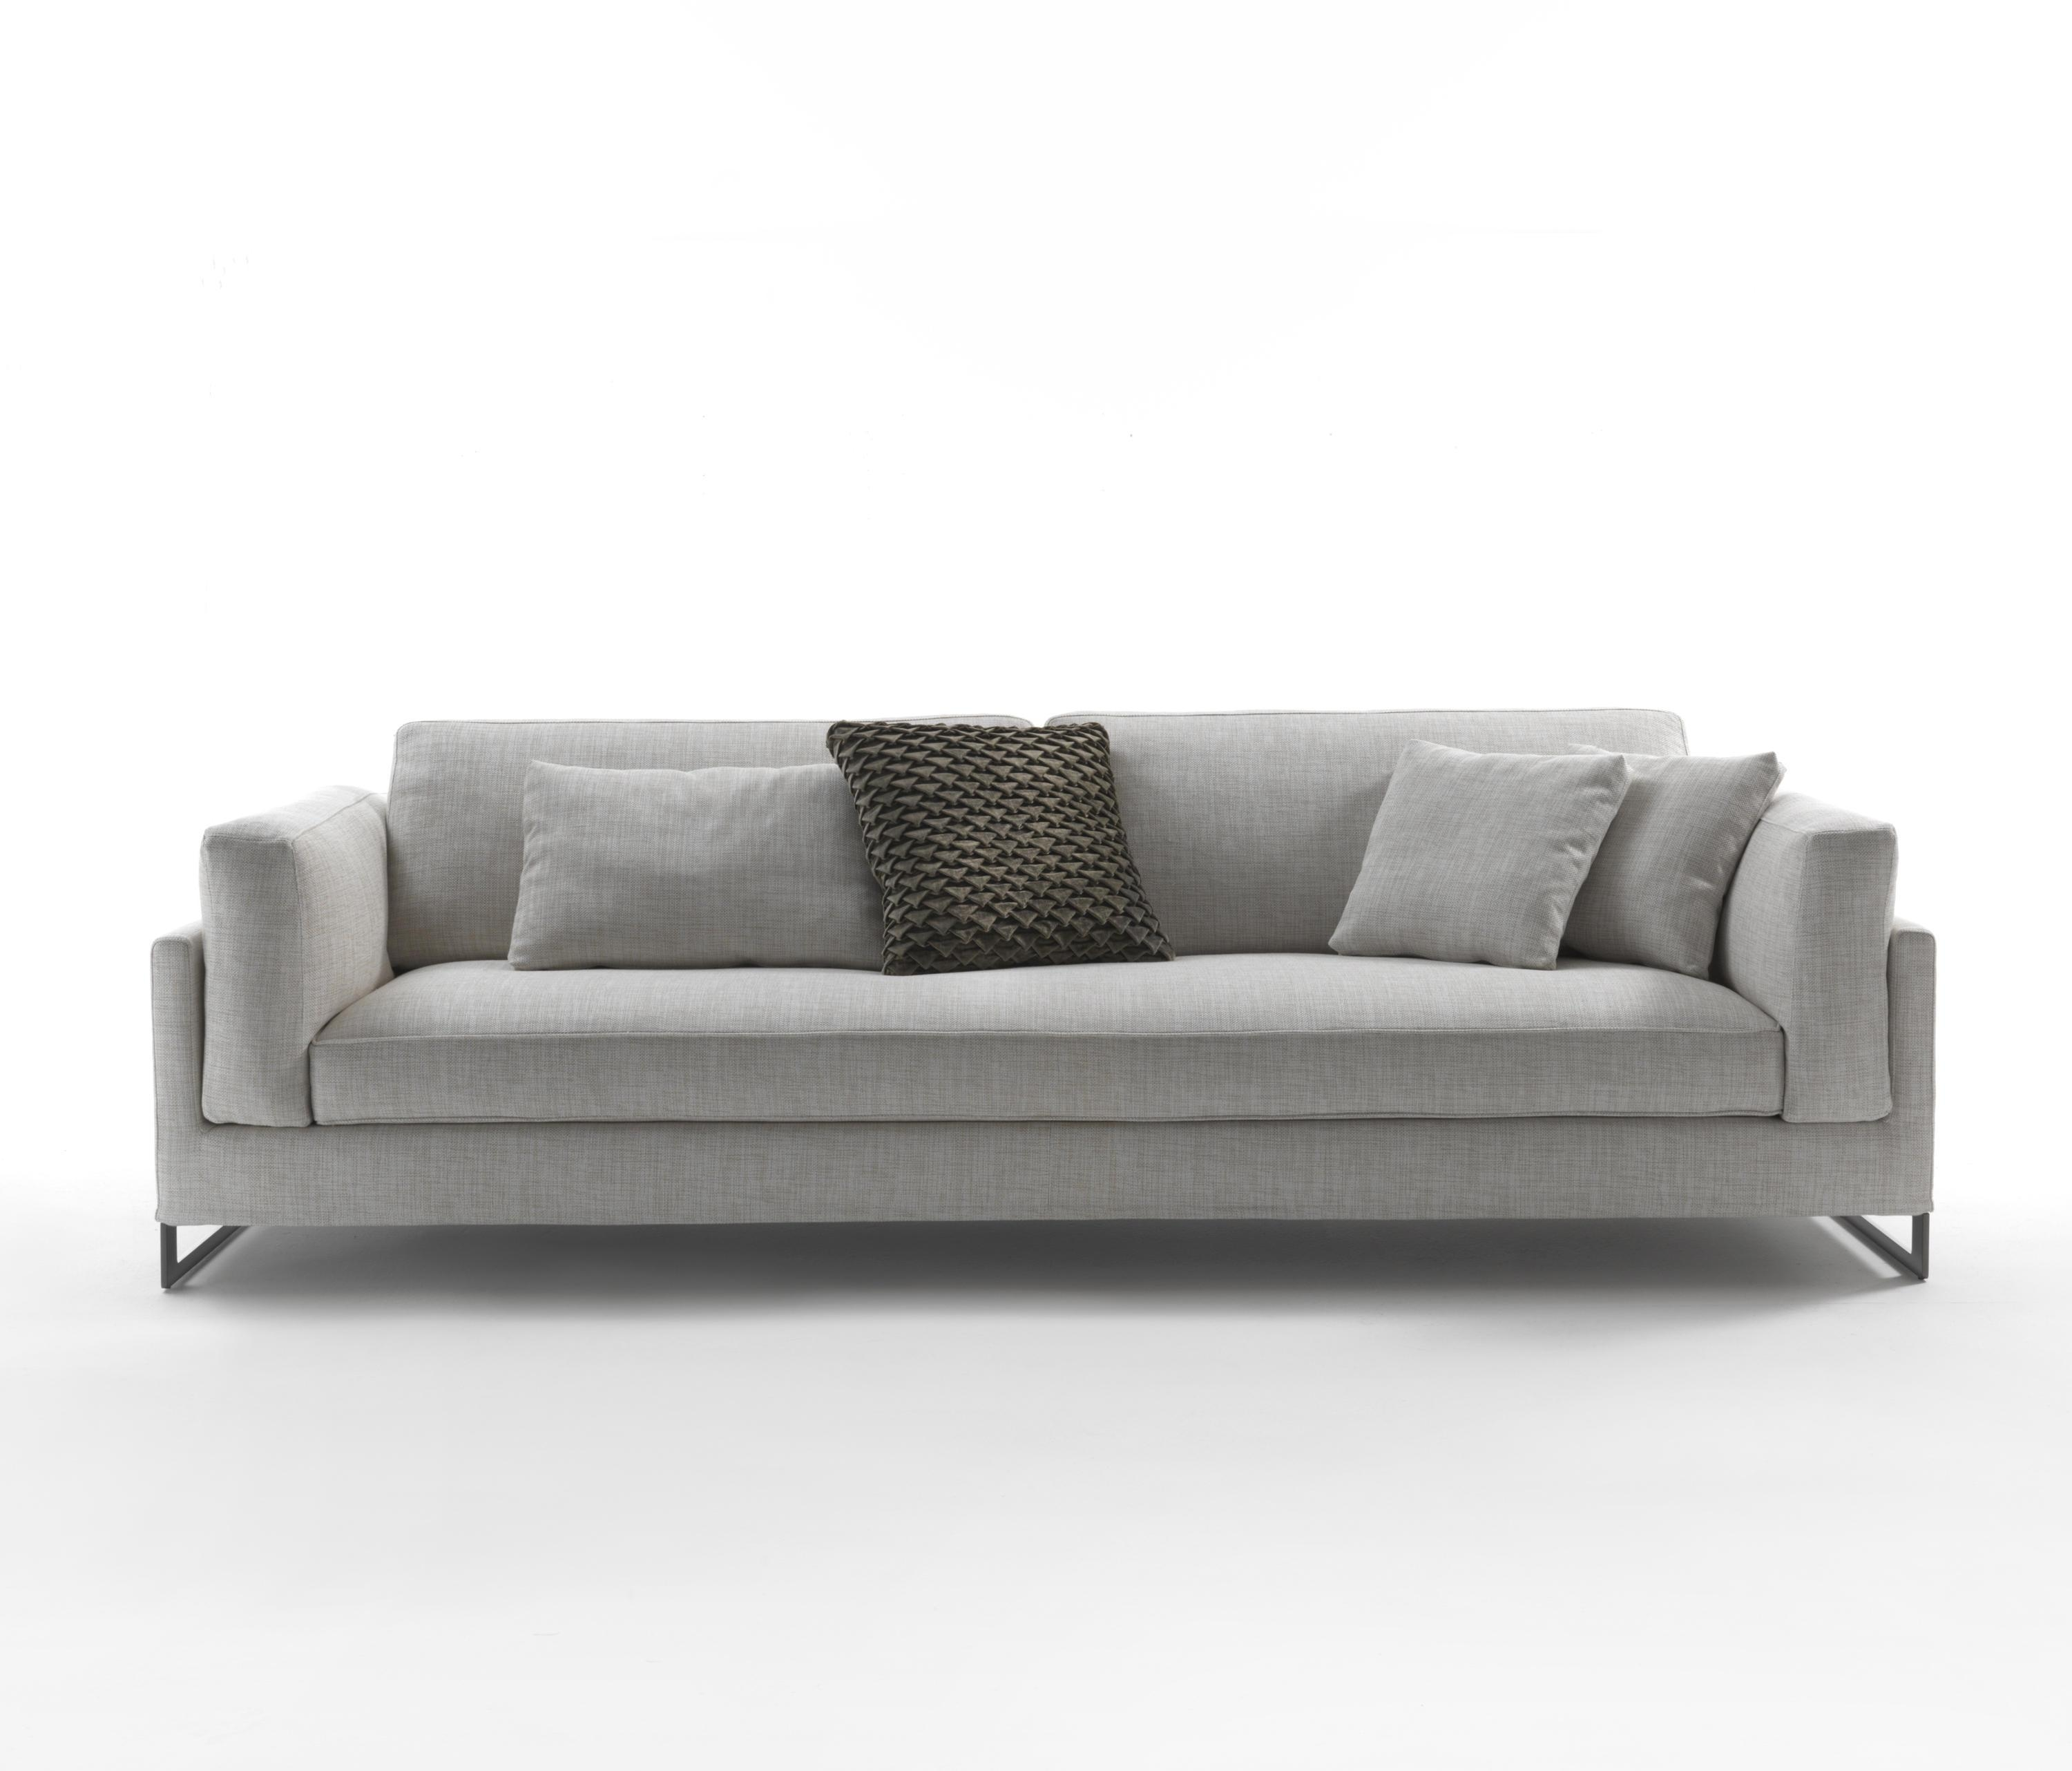 Davis In – Sofas From Frigerio | Architonic In Davis Sofas (Image 5 of 20)